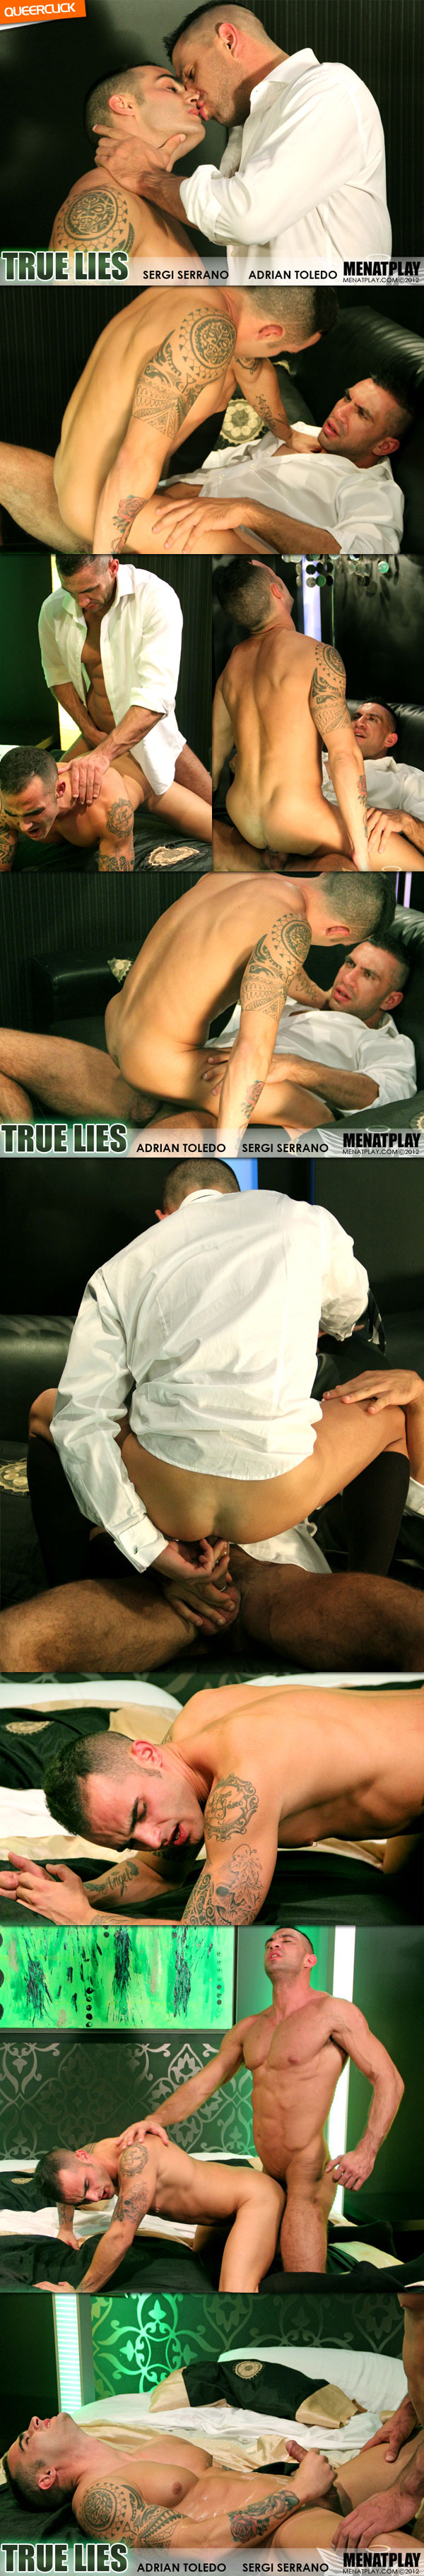 Men At Play: True Lies - Adrian Toledo and Sergi Serrano